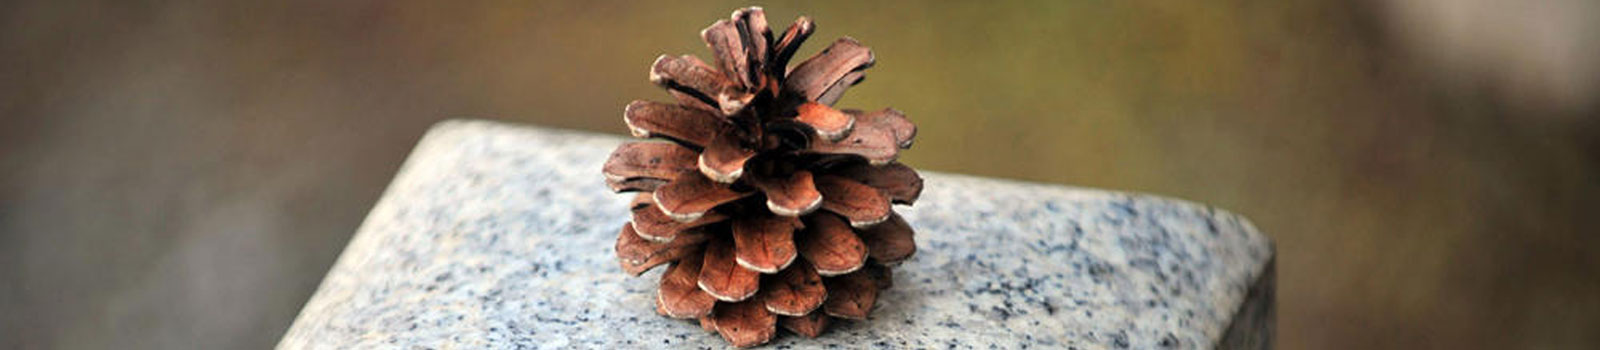 Image of a pine cone on marble